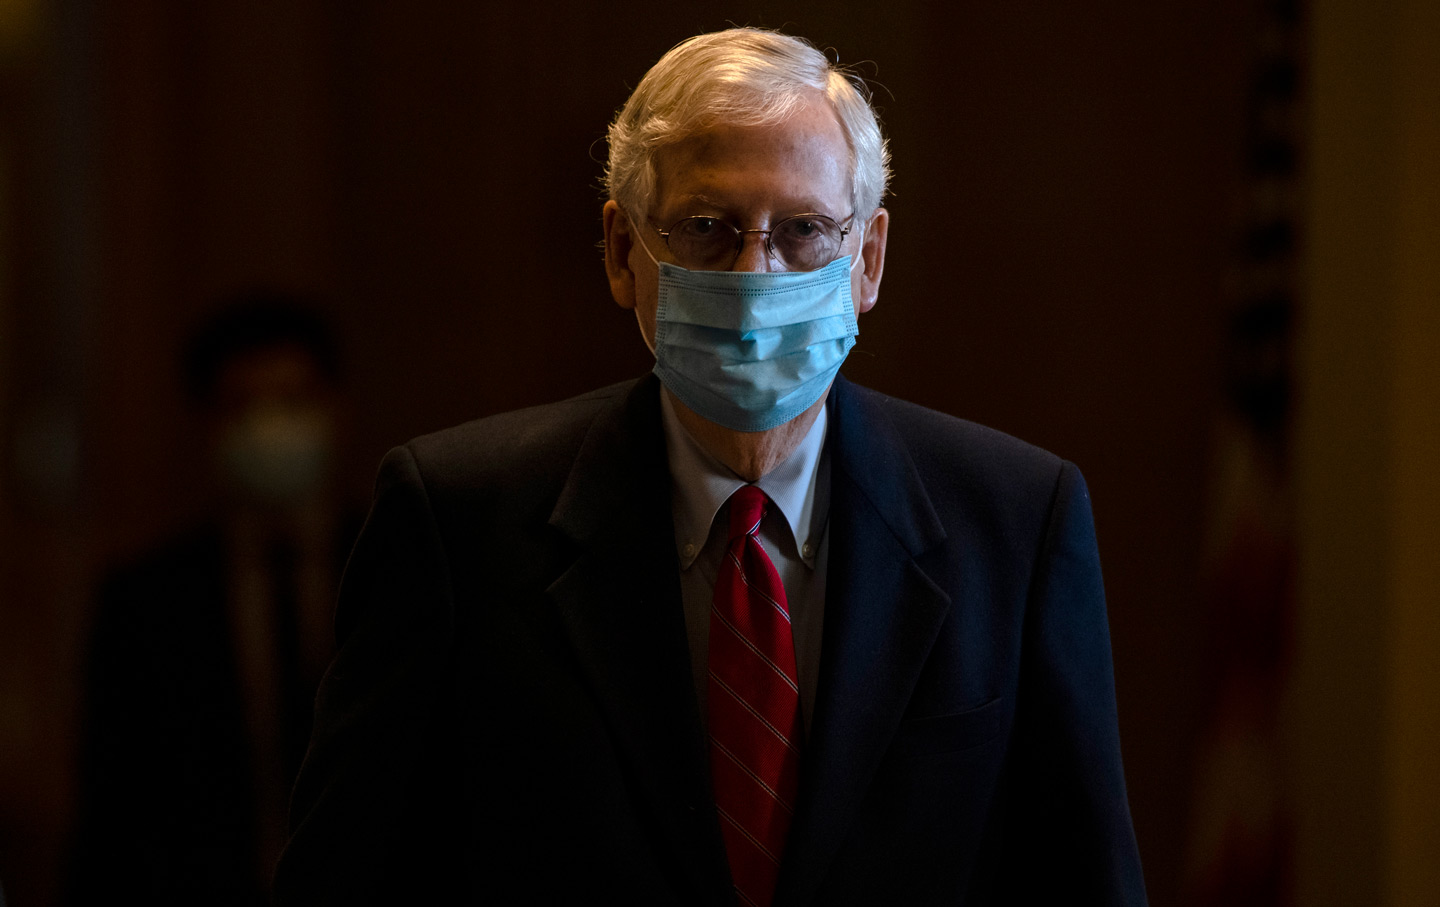 mitch-mcconnell-mask-portrait-gty-img